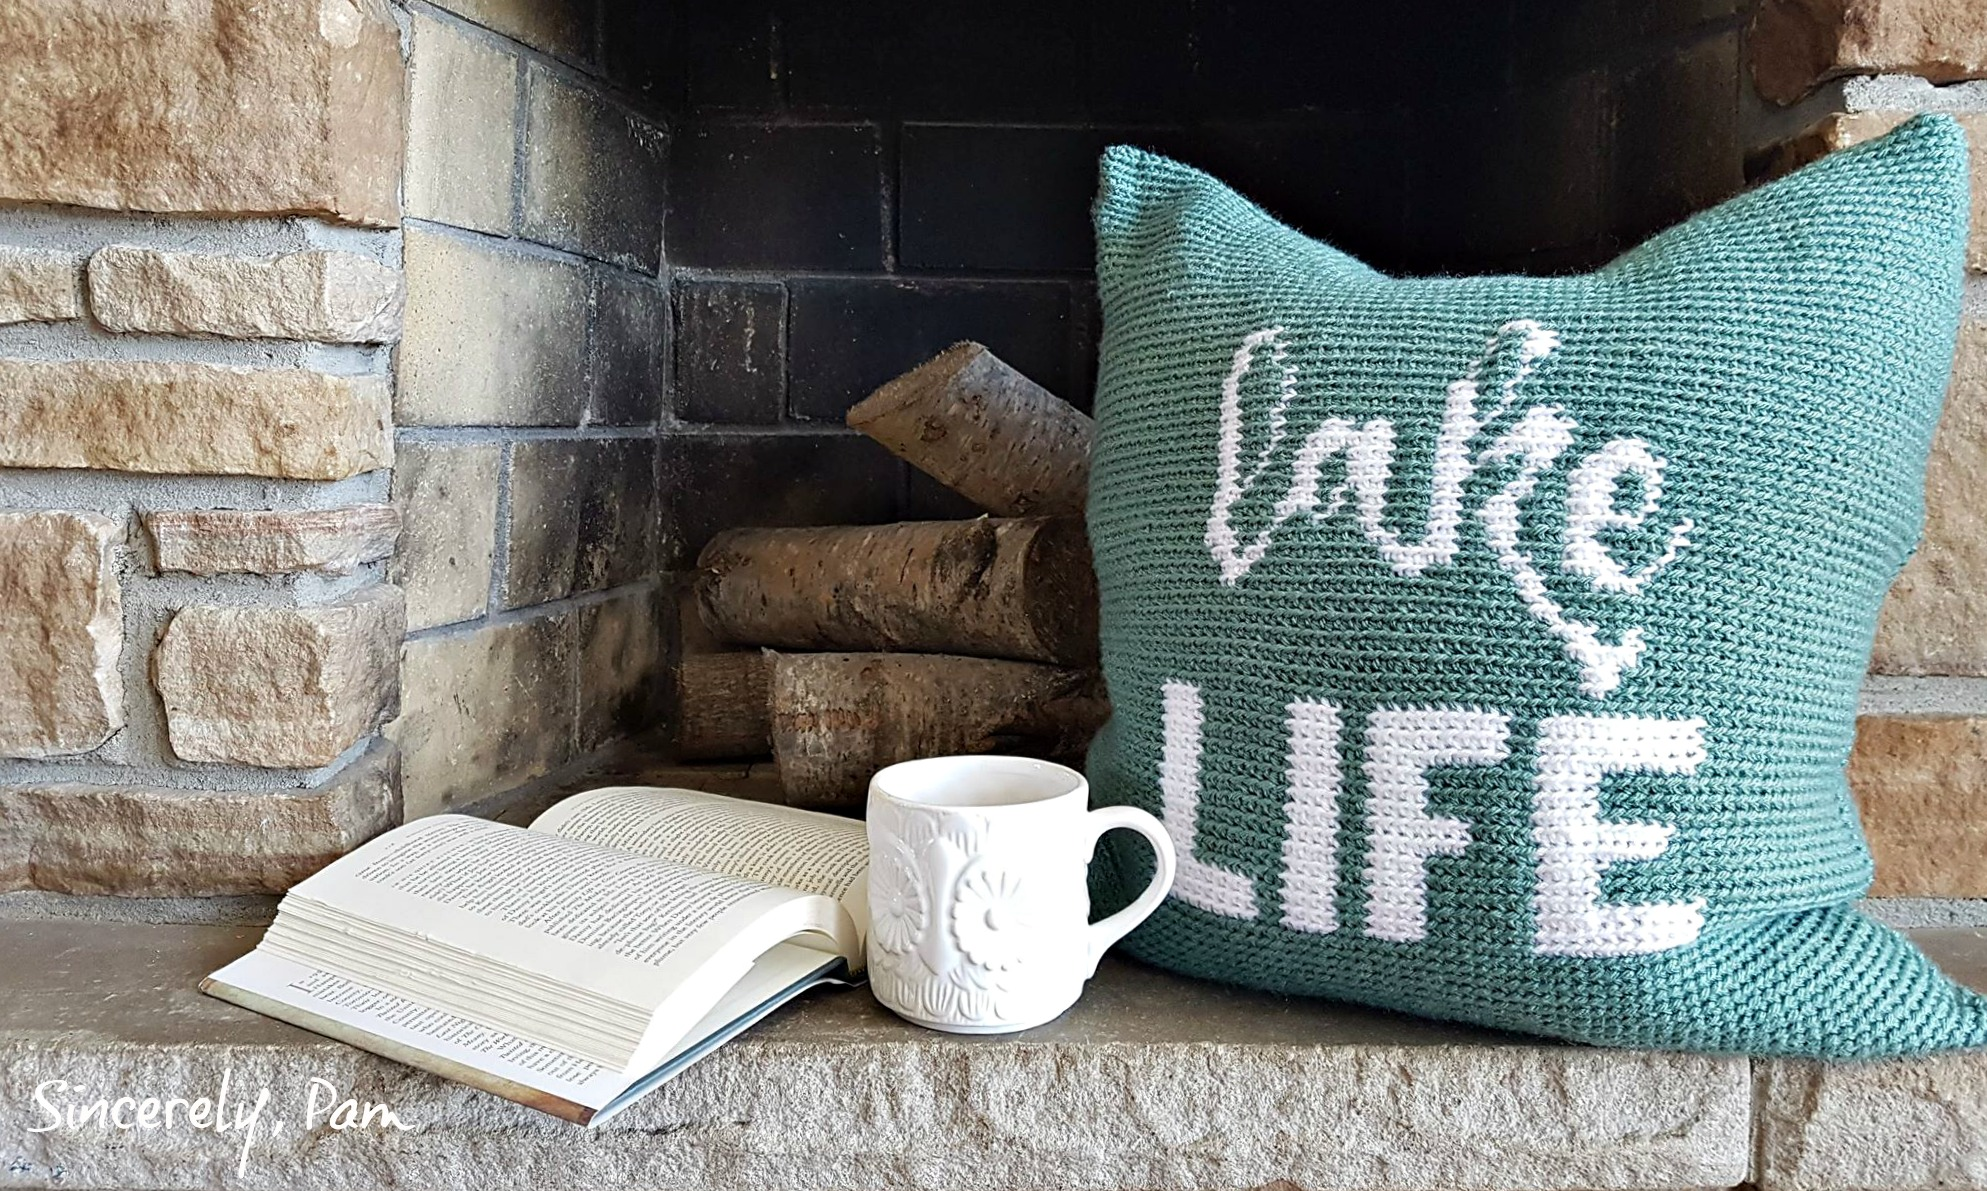 Lake Life Crochet Pillow by Sincerely, Pam